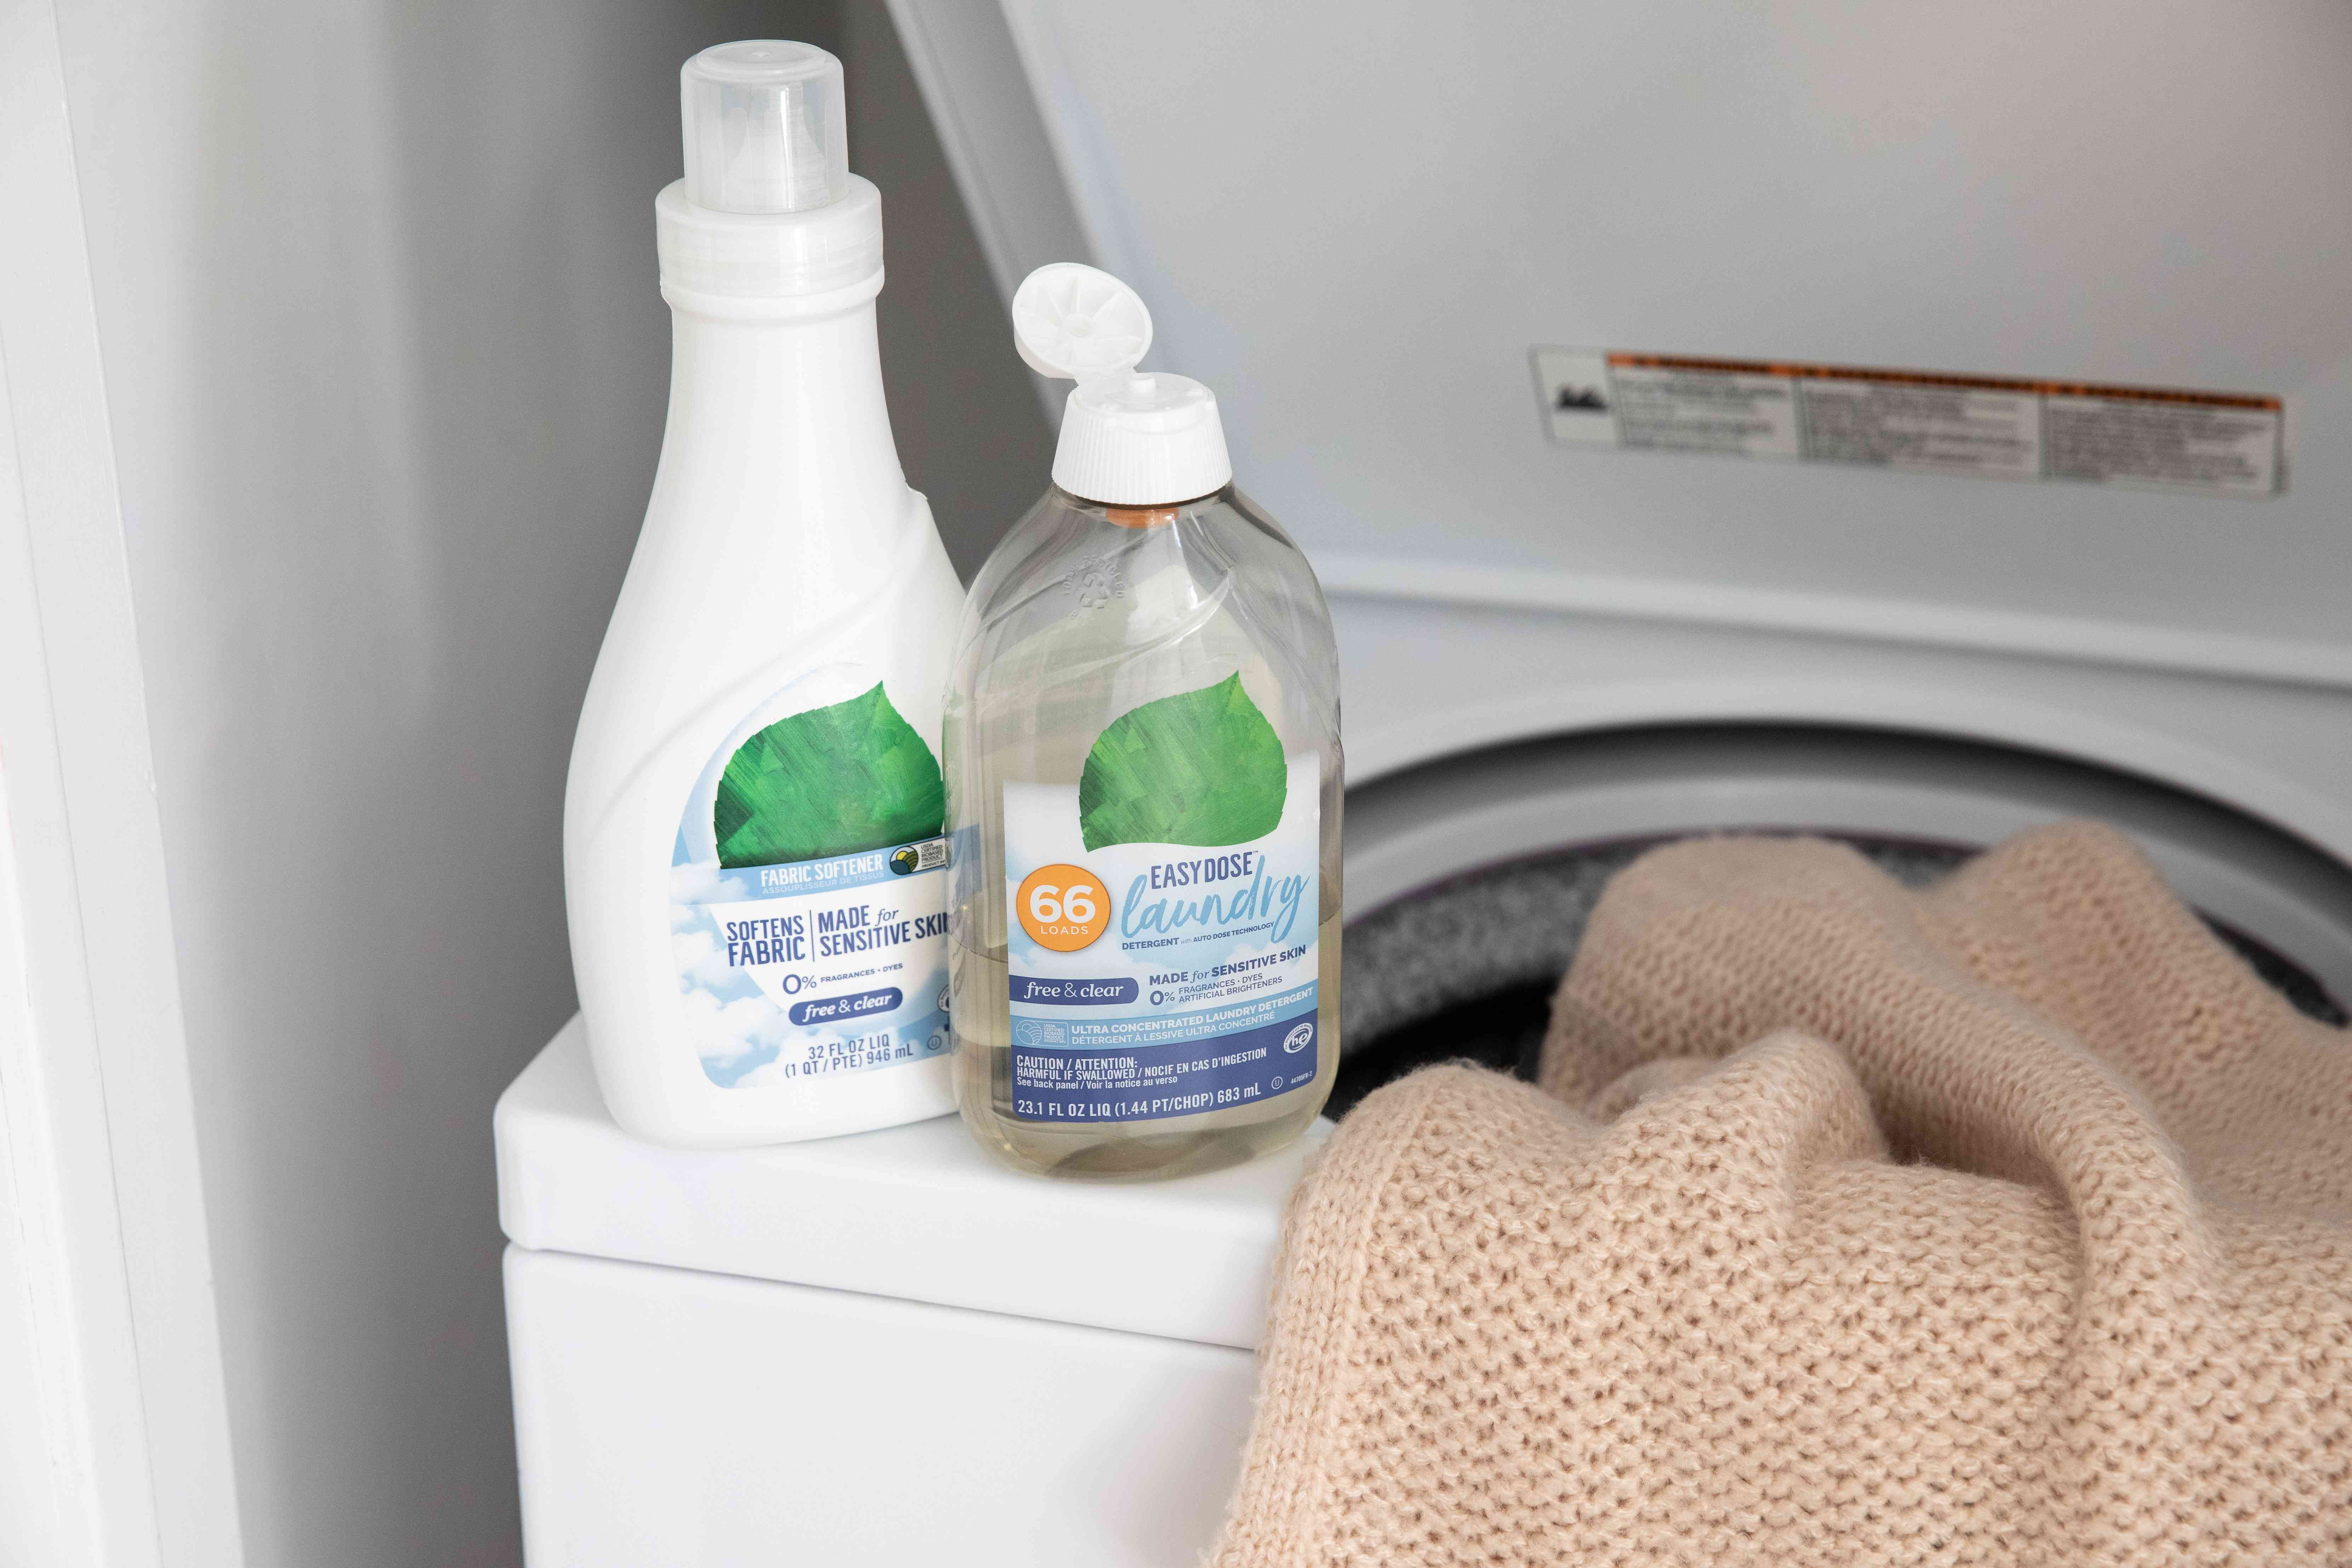 Laundry detergent bottles resting on open washing machine with acrylic sweater